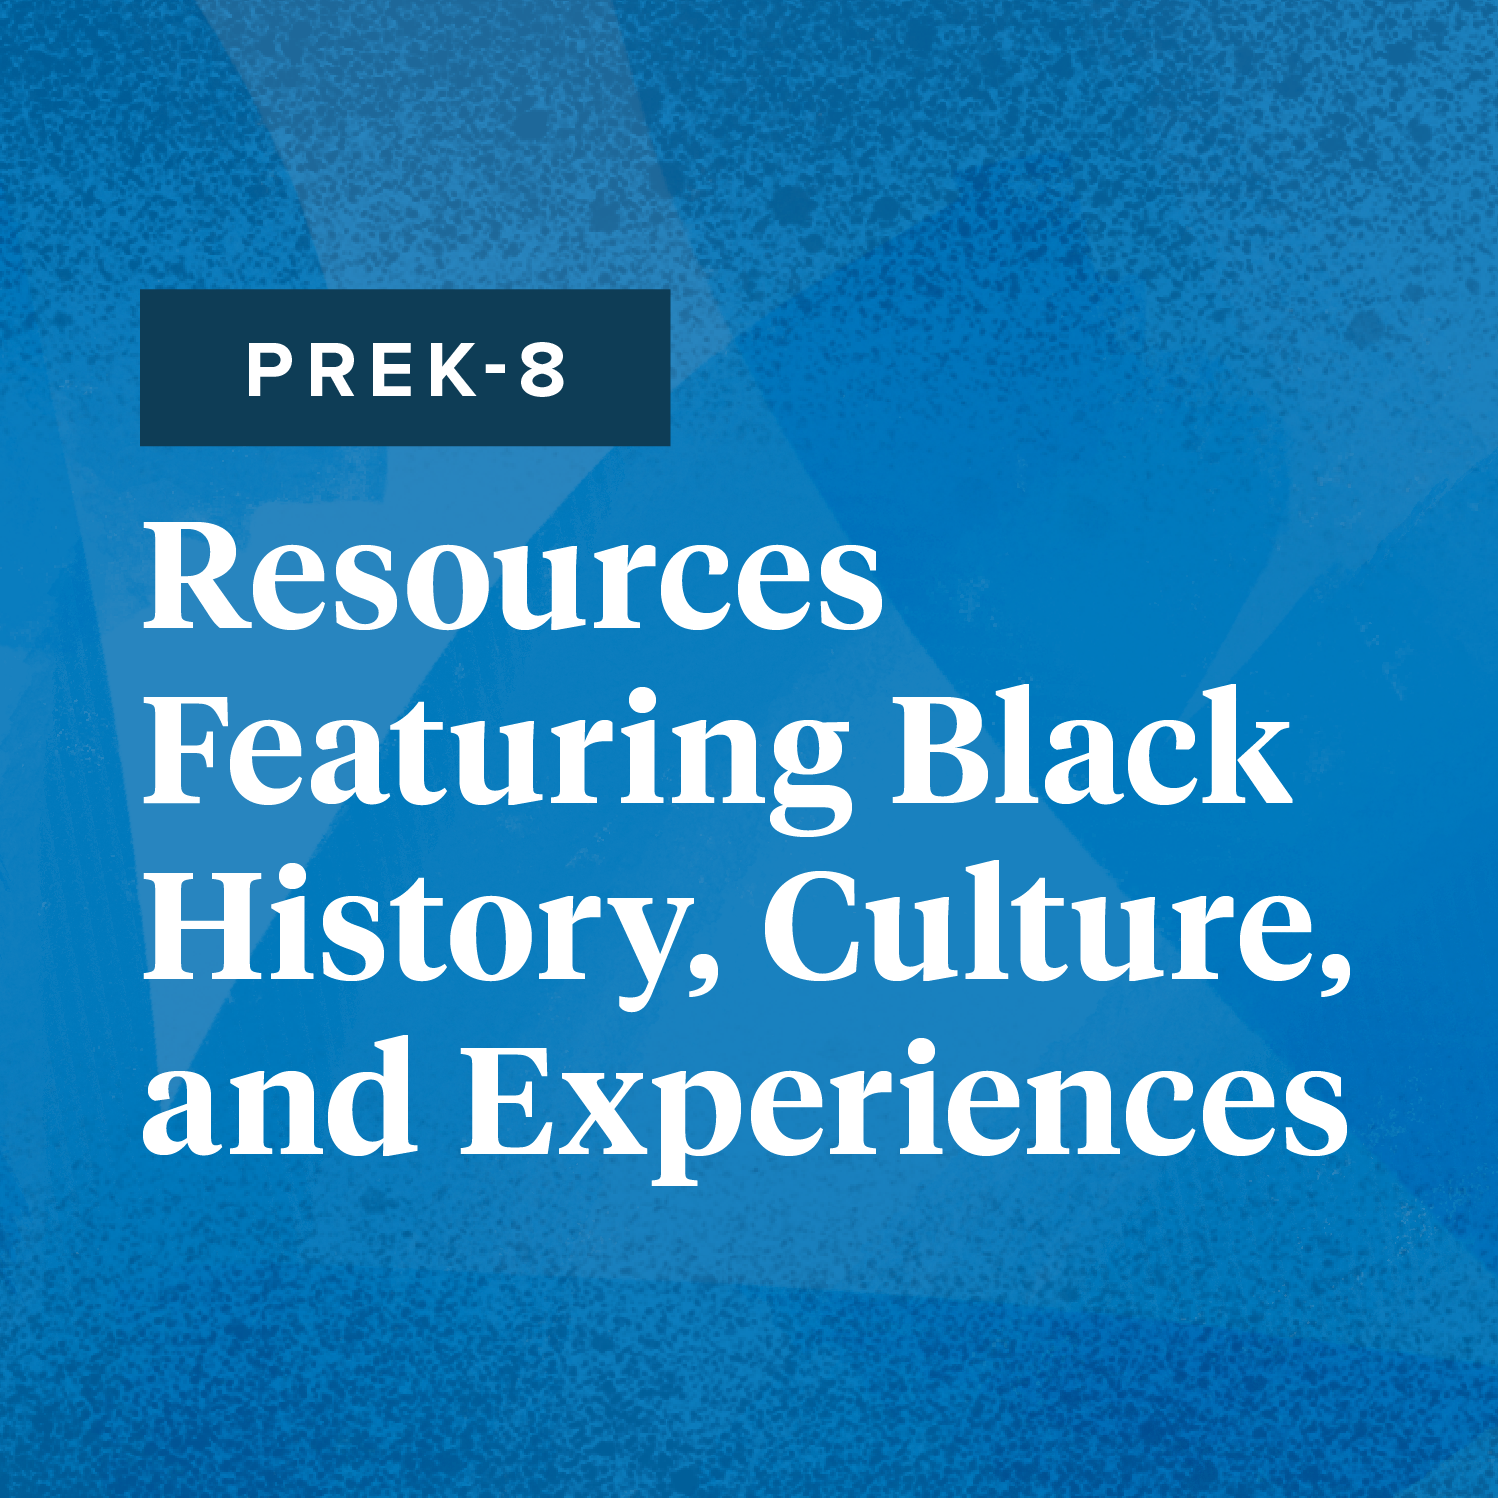 Resources for PreK-8 Featuring Black History, Culture, and Experiences